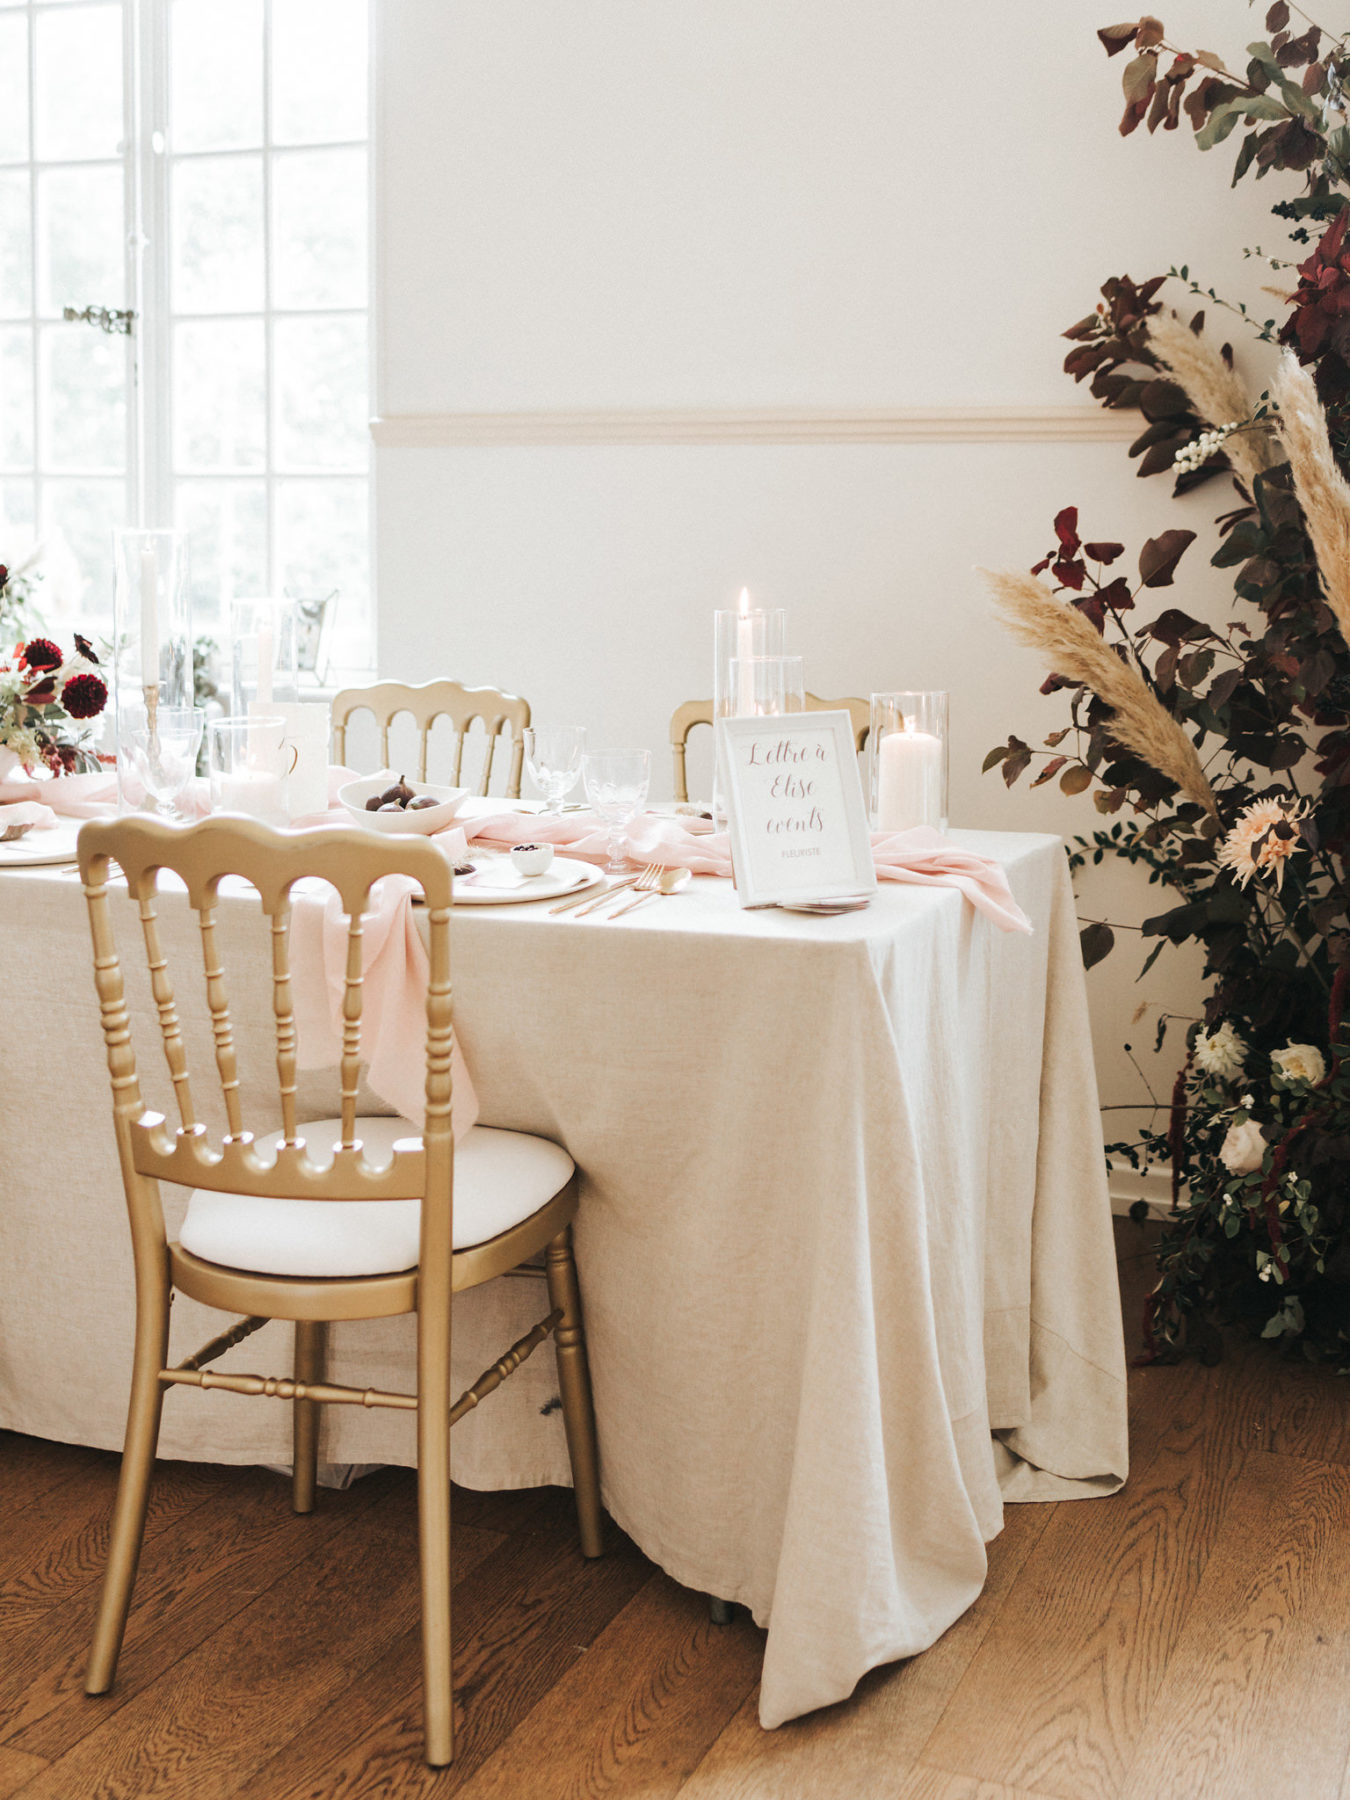 lettre_à_élise_events_fleuriste_décorateur_stylisme_wedding_design_scénographie_salon_festival_mariage_nancy_bonnie_and_clyde_événement_élégant_nature_decor_de_table